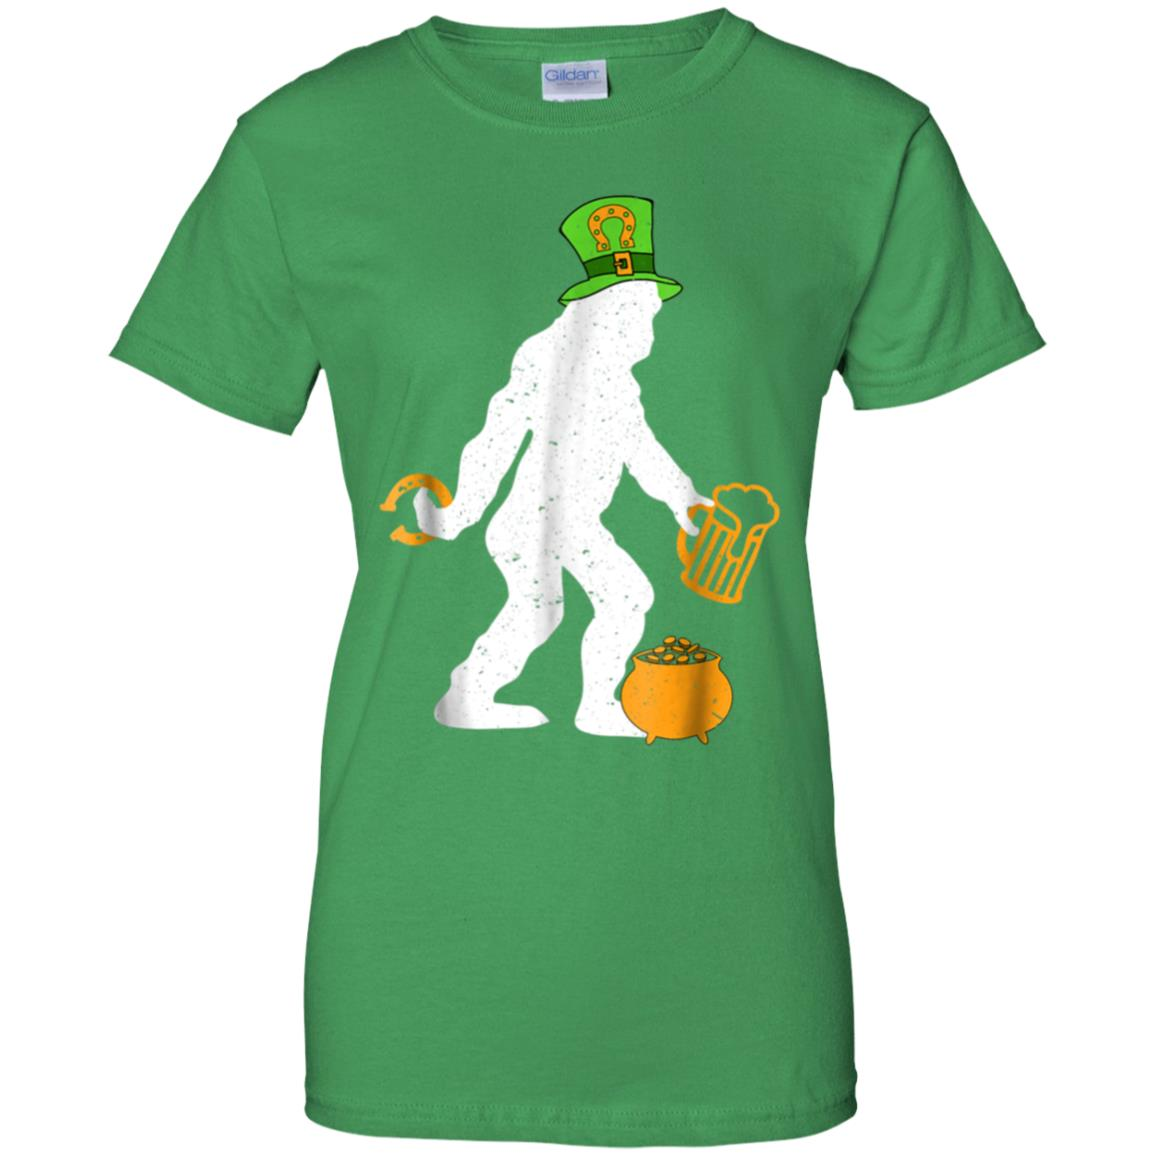 3d78410d Awesome bigfoot st patrick's day shirt funny st paddy's day tee ...